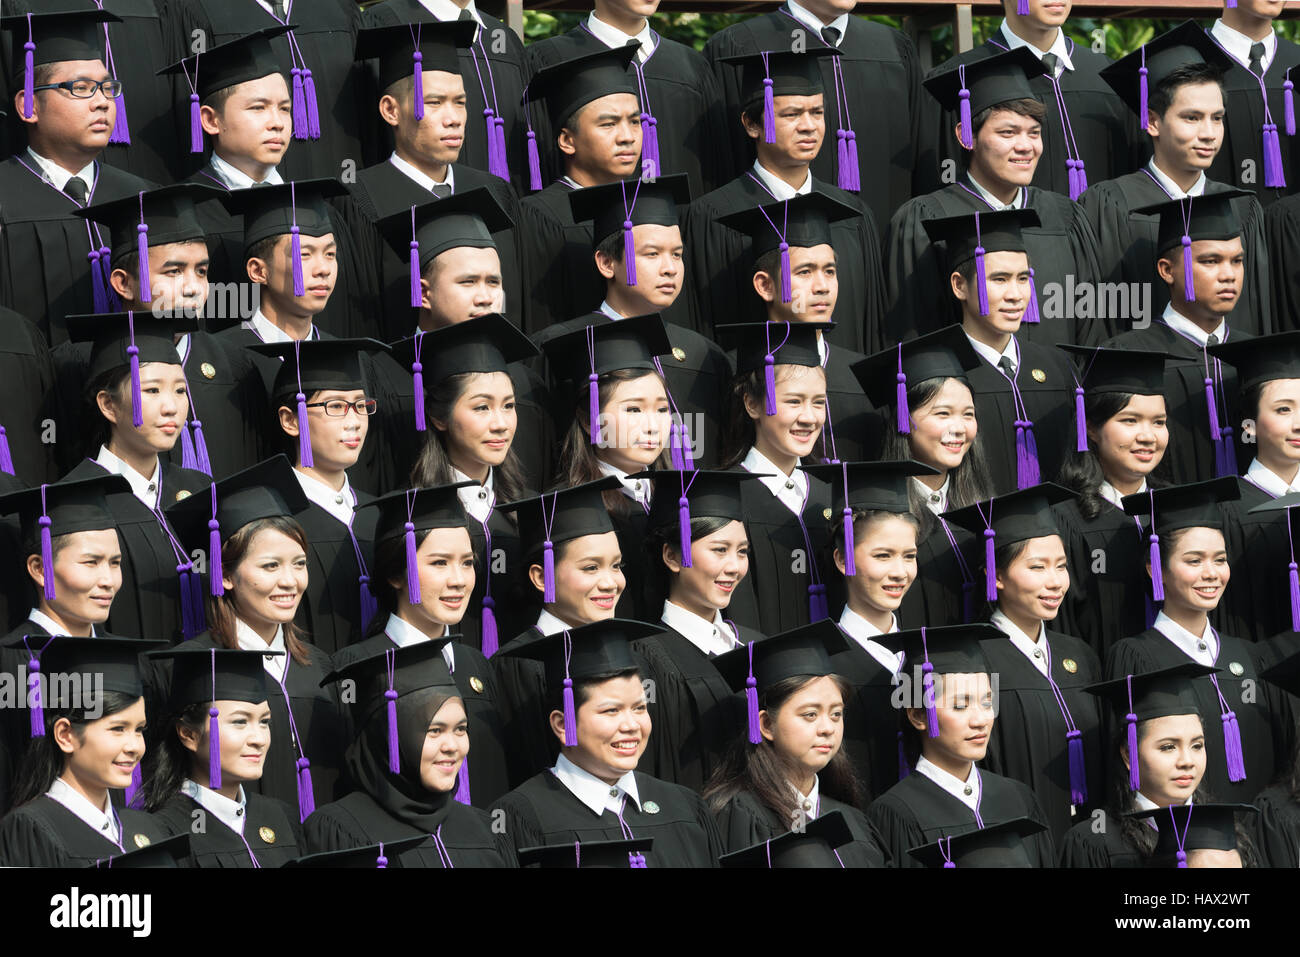 Crowd of student graduate class in caps and gowns standing in commencement event at university. - Stock Image